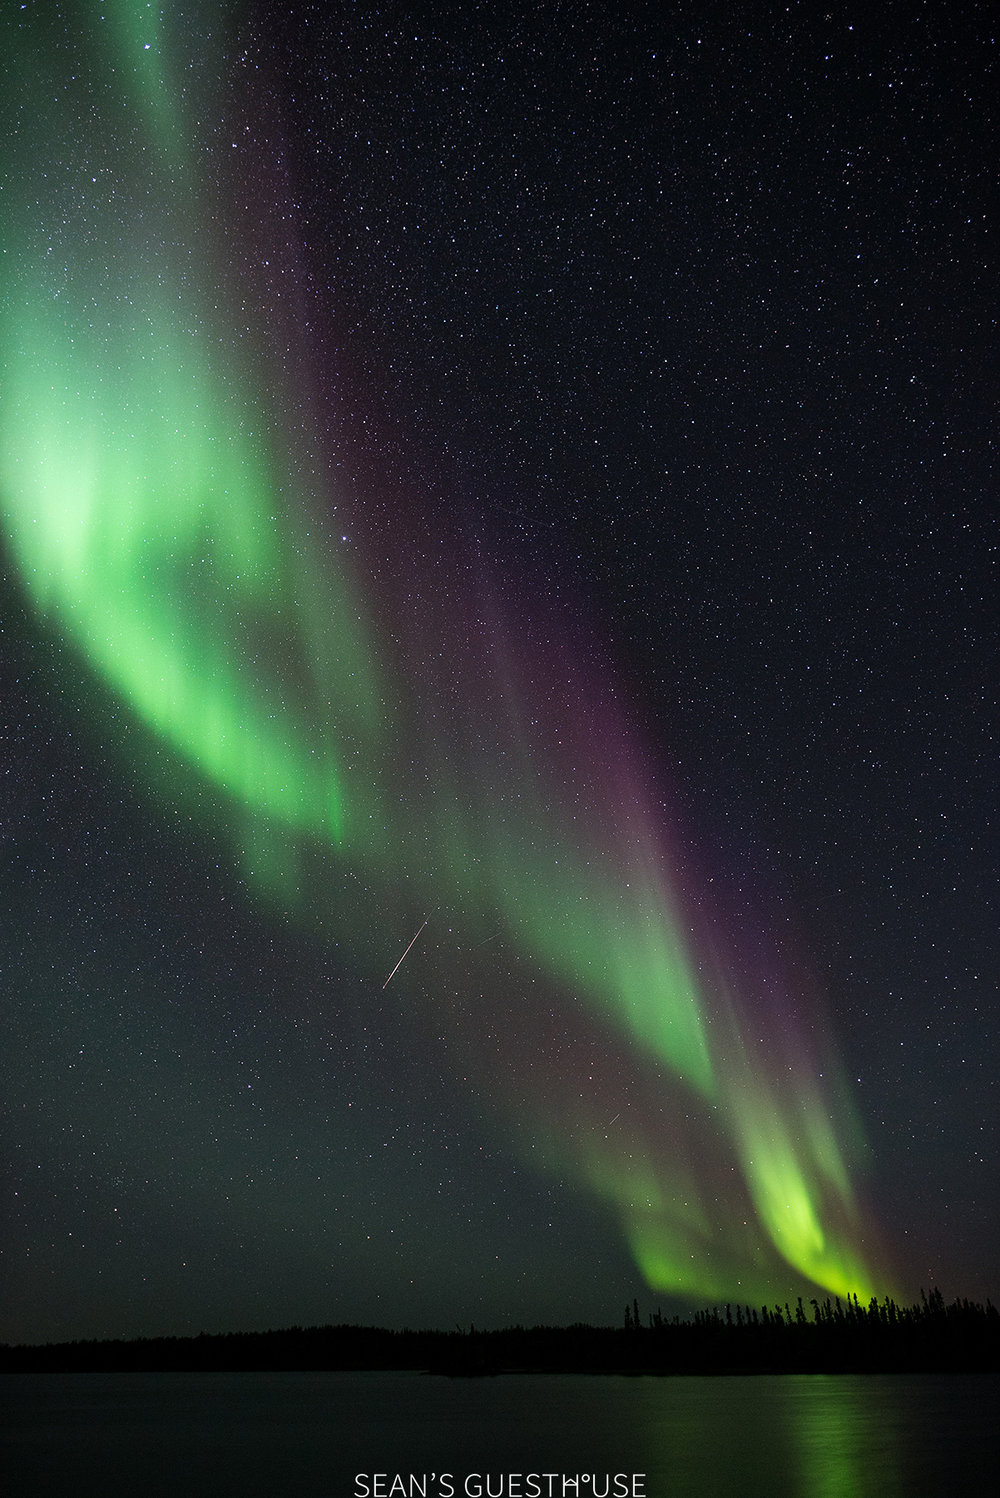 Sean's Guesthouse - Autumn Northern Lights Canada - 5.jpg